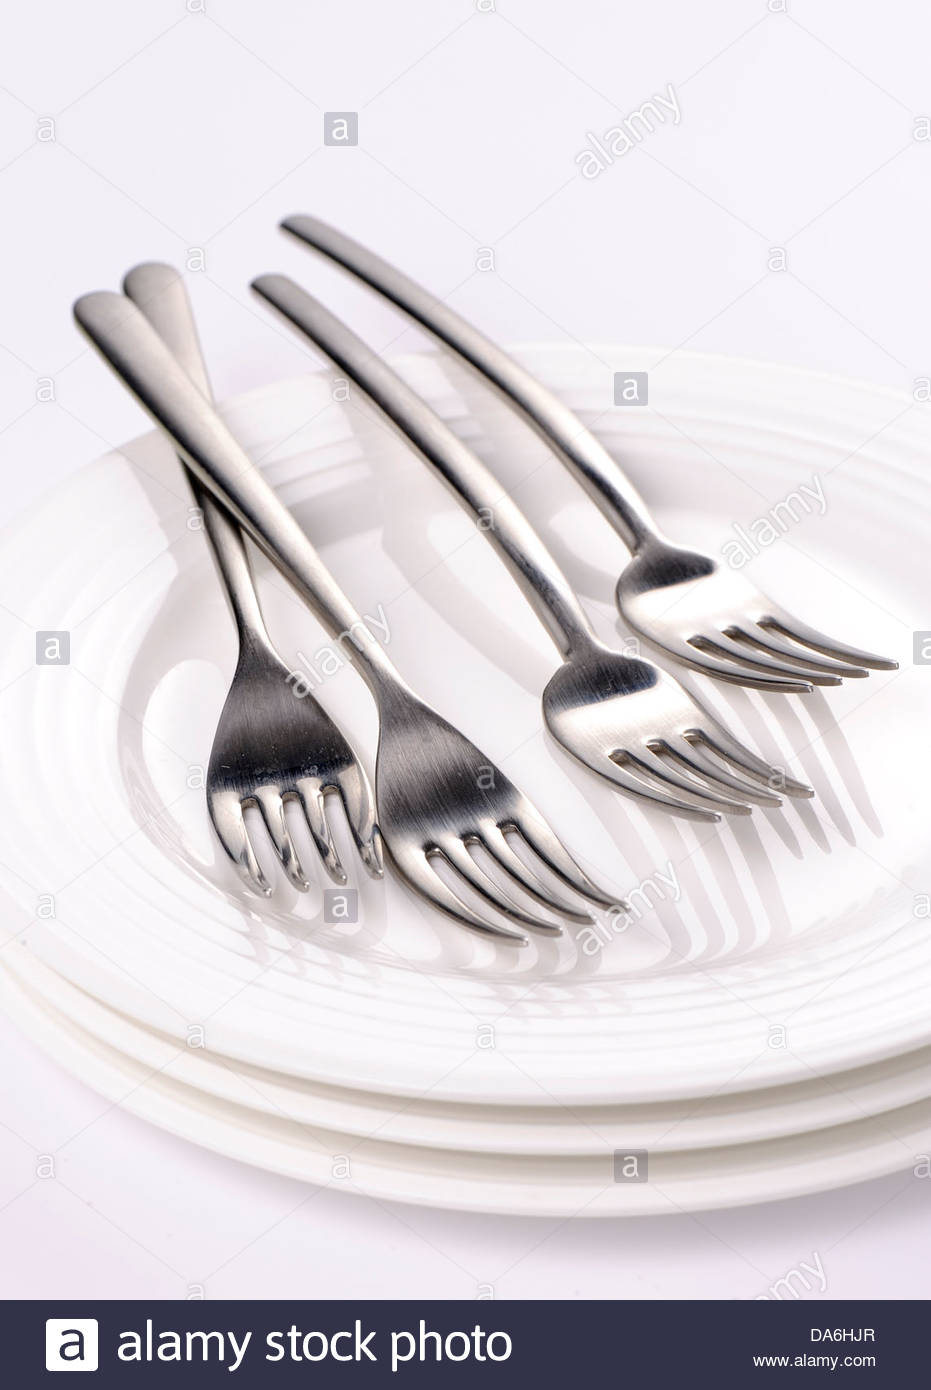 forks and dishes - Stock Image